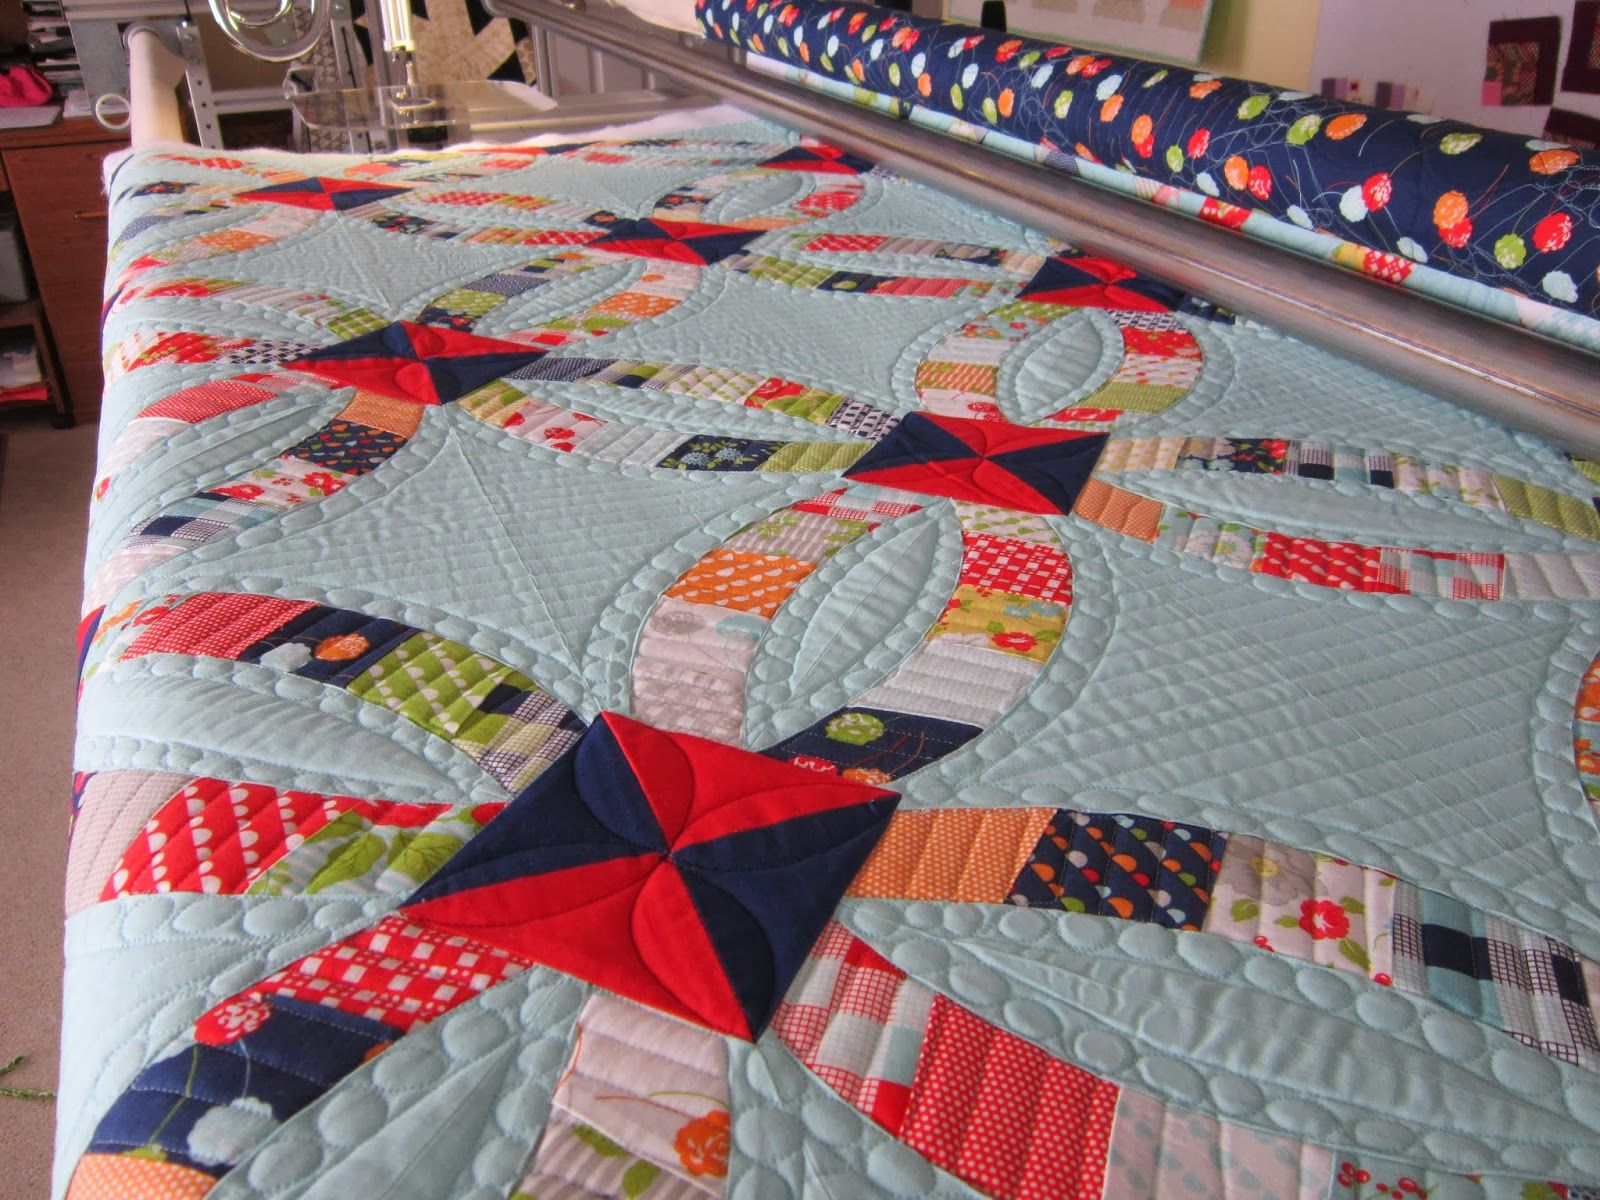 http://quiltingismybliss.blogspot.com/search?updated-max=2014-02-17T14:53:00-08:00&max-results=7&start=21&by-date=false